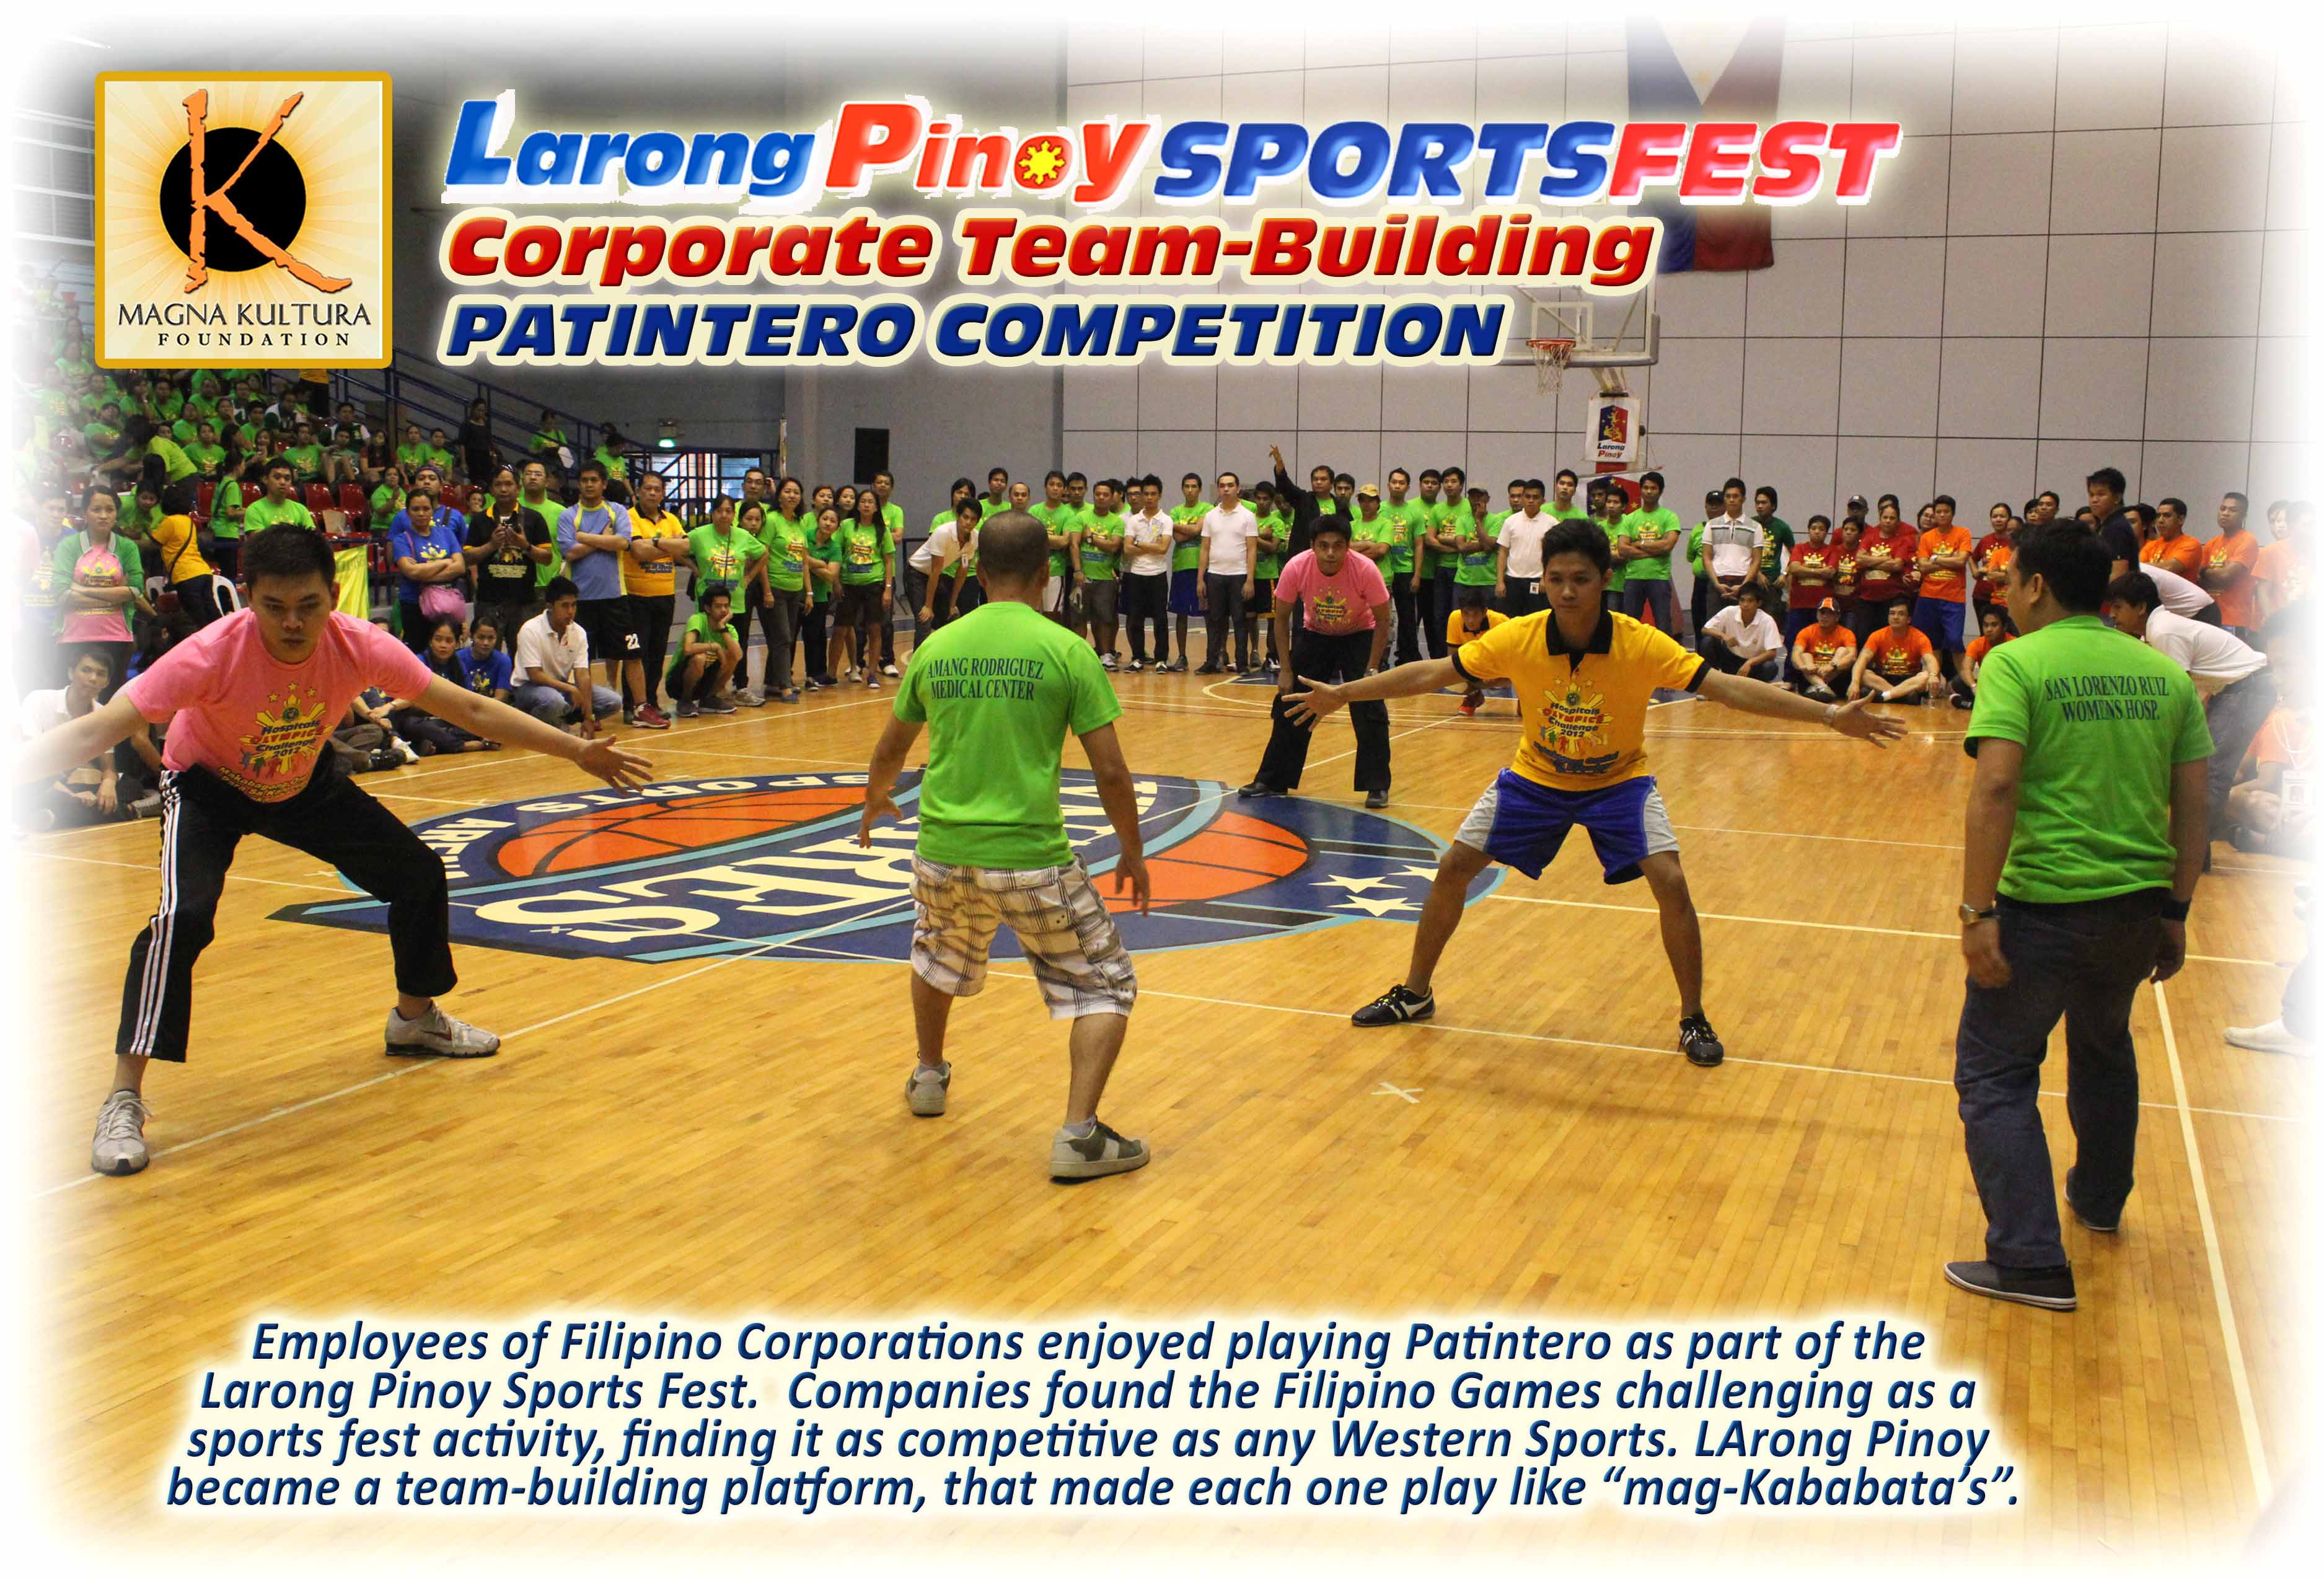 filipino games for team building